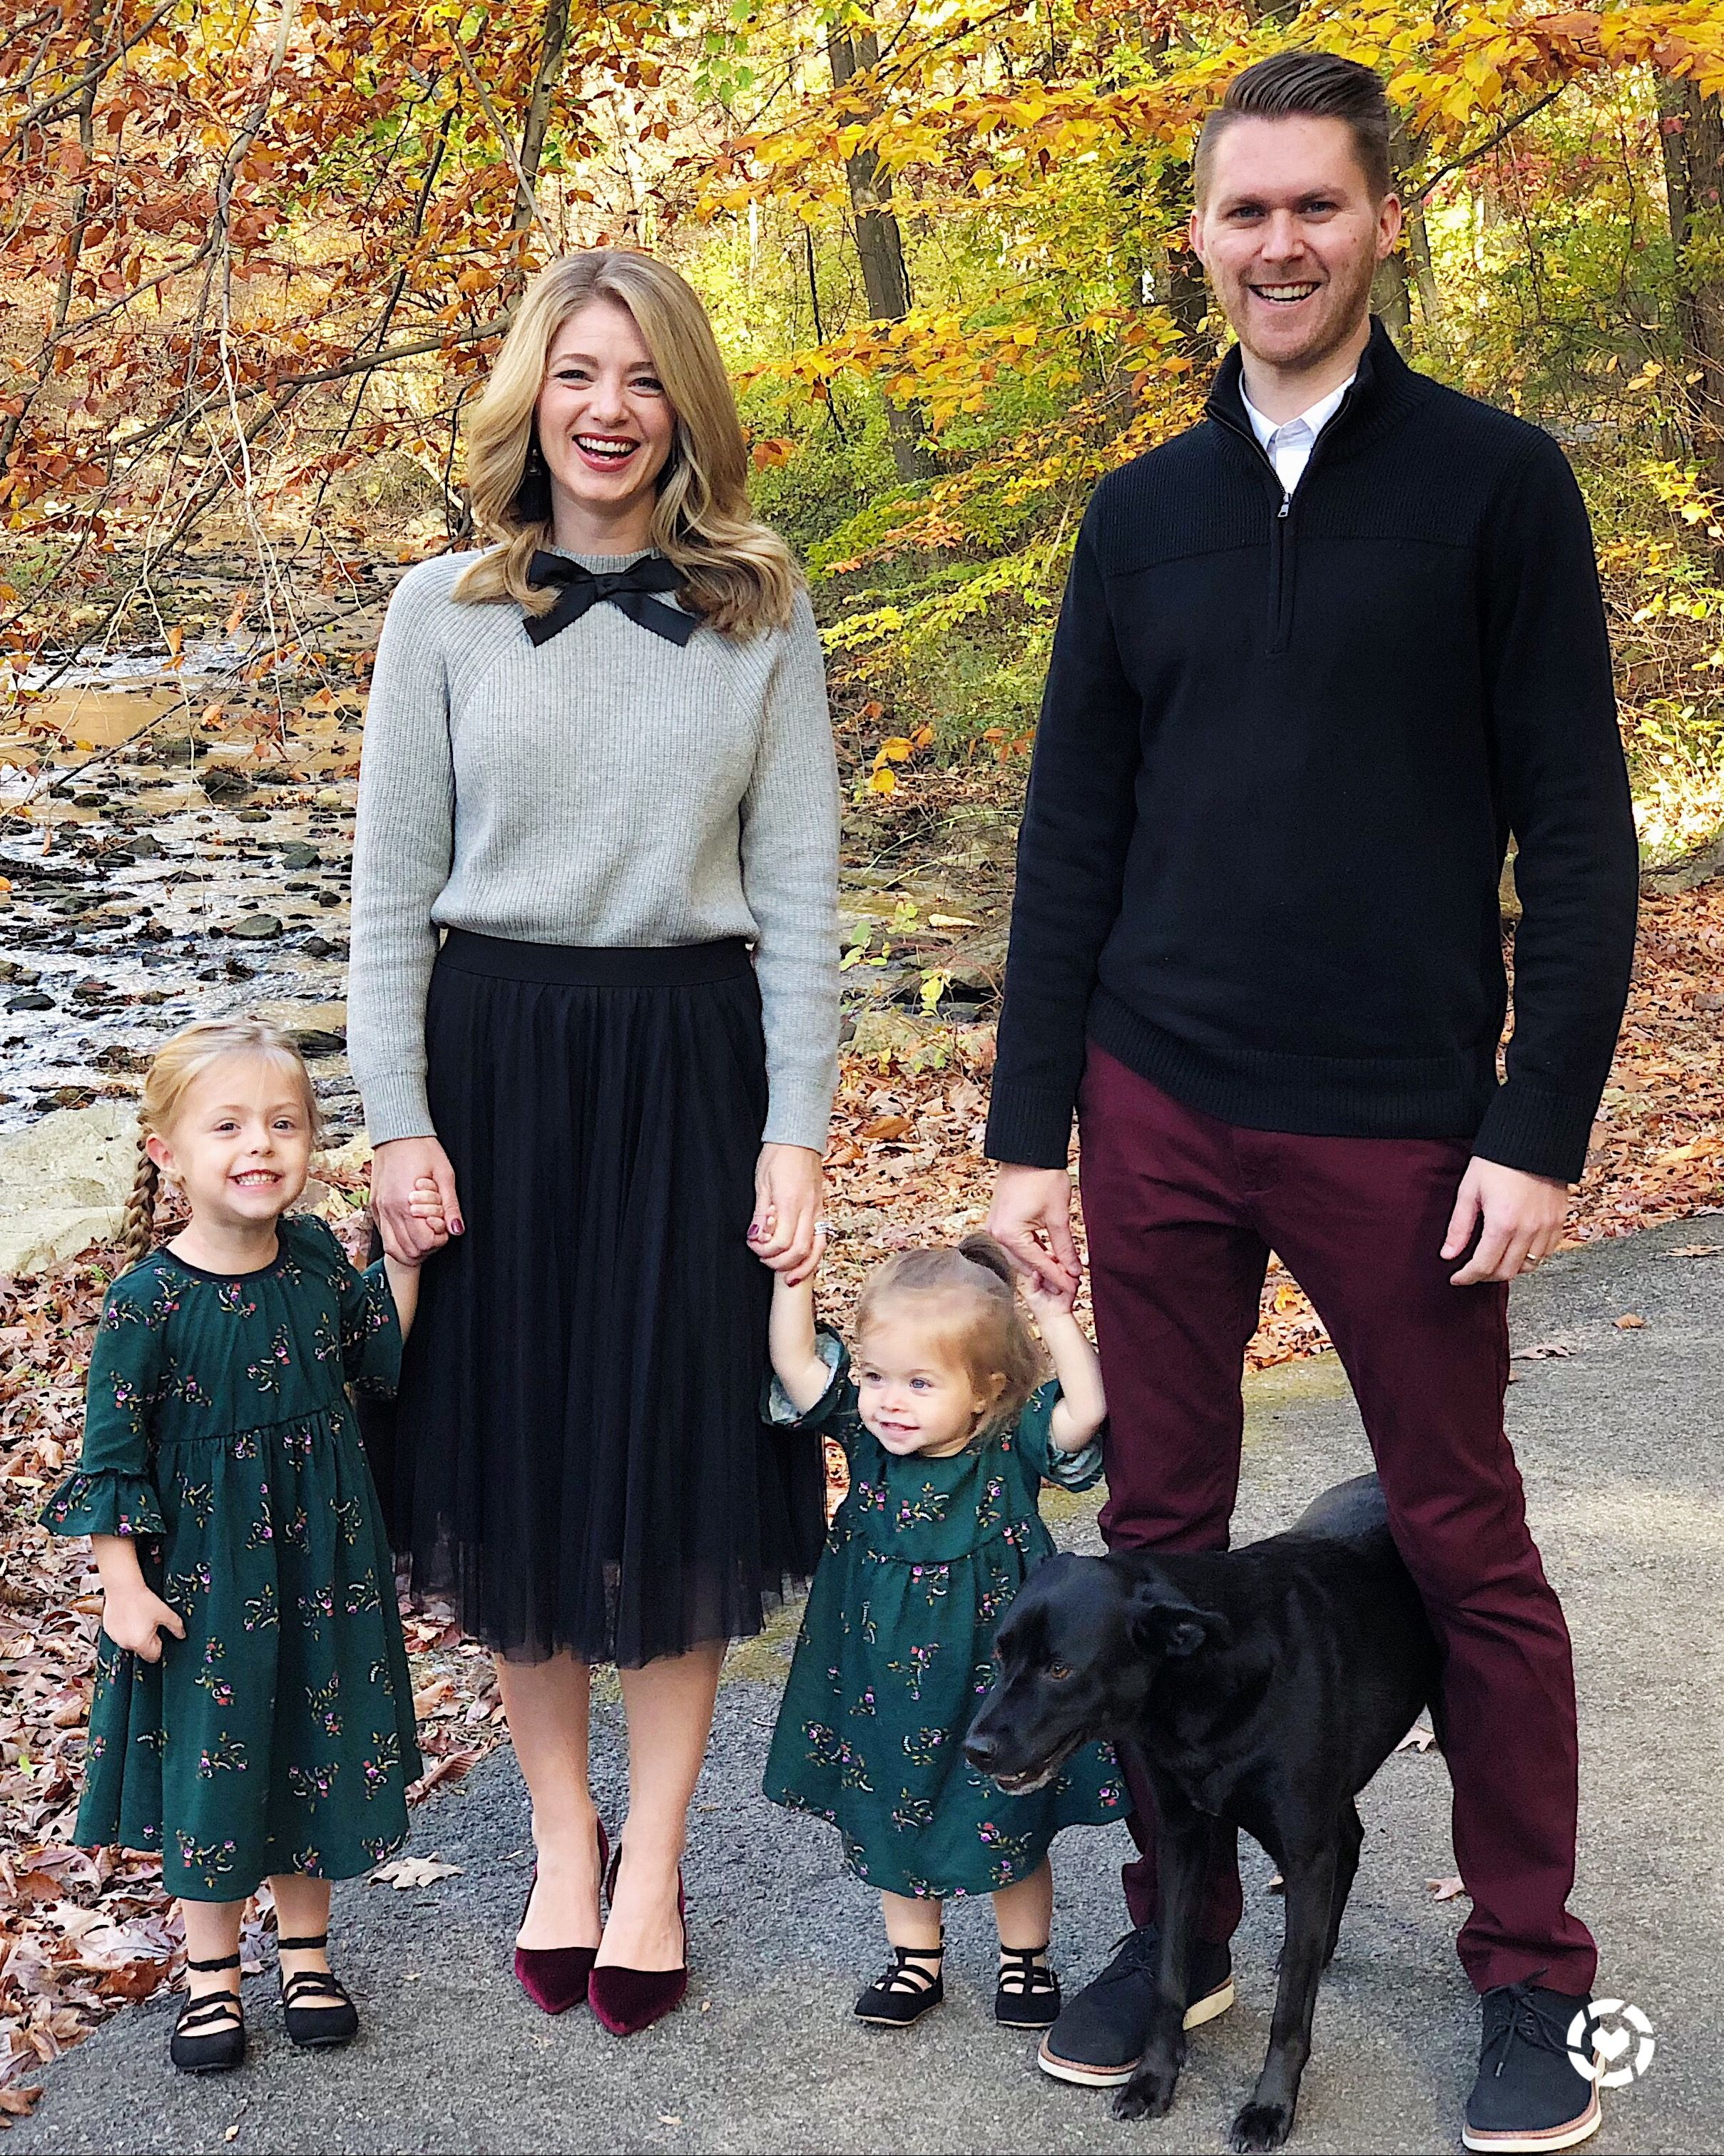 503671a61dd7 Christmas card outfit ideas featuring outfits from Old Navy